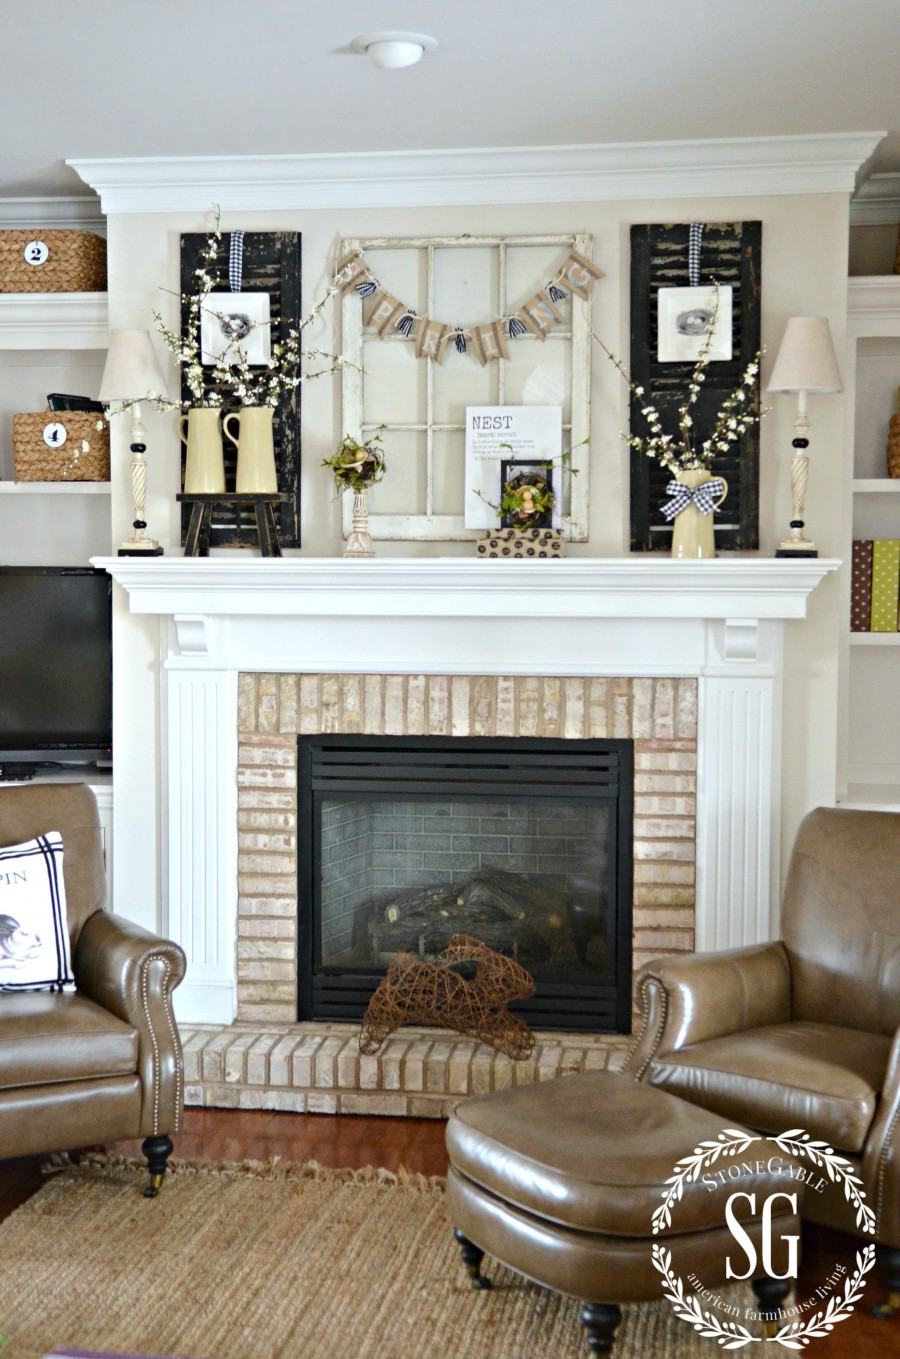 SPRING MANTEL-spring decor in the family room-stonegableblog.com